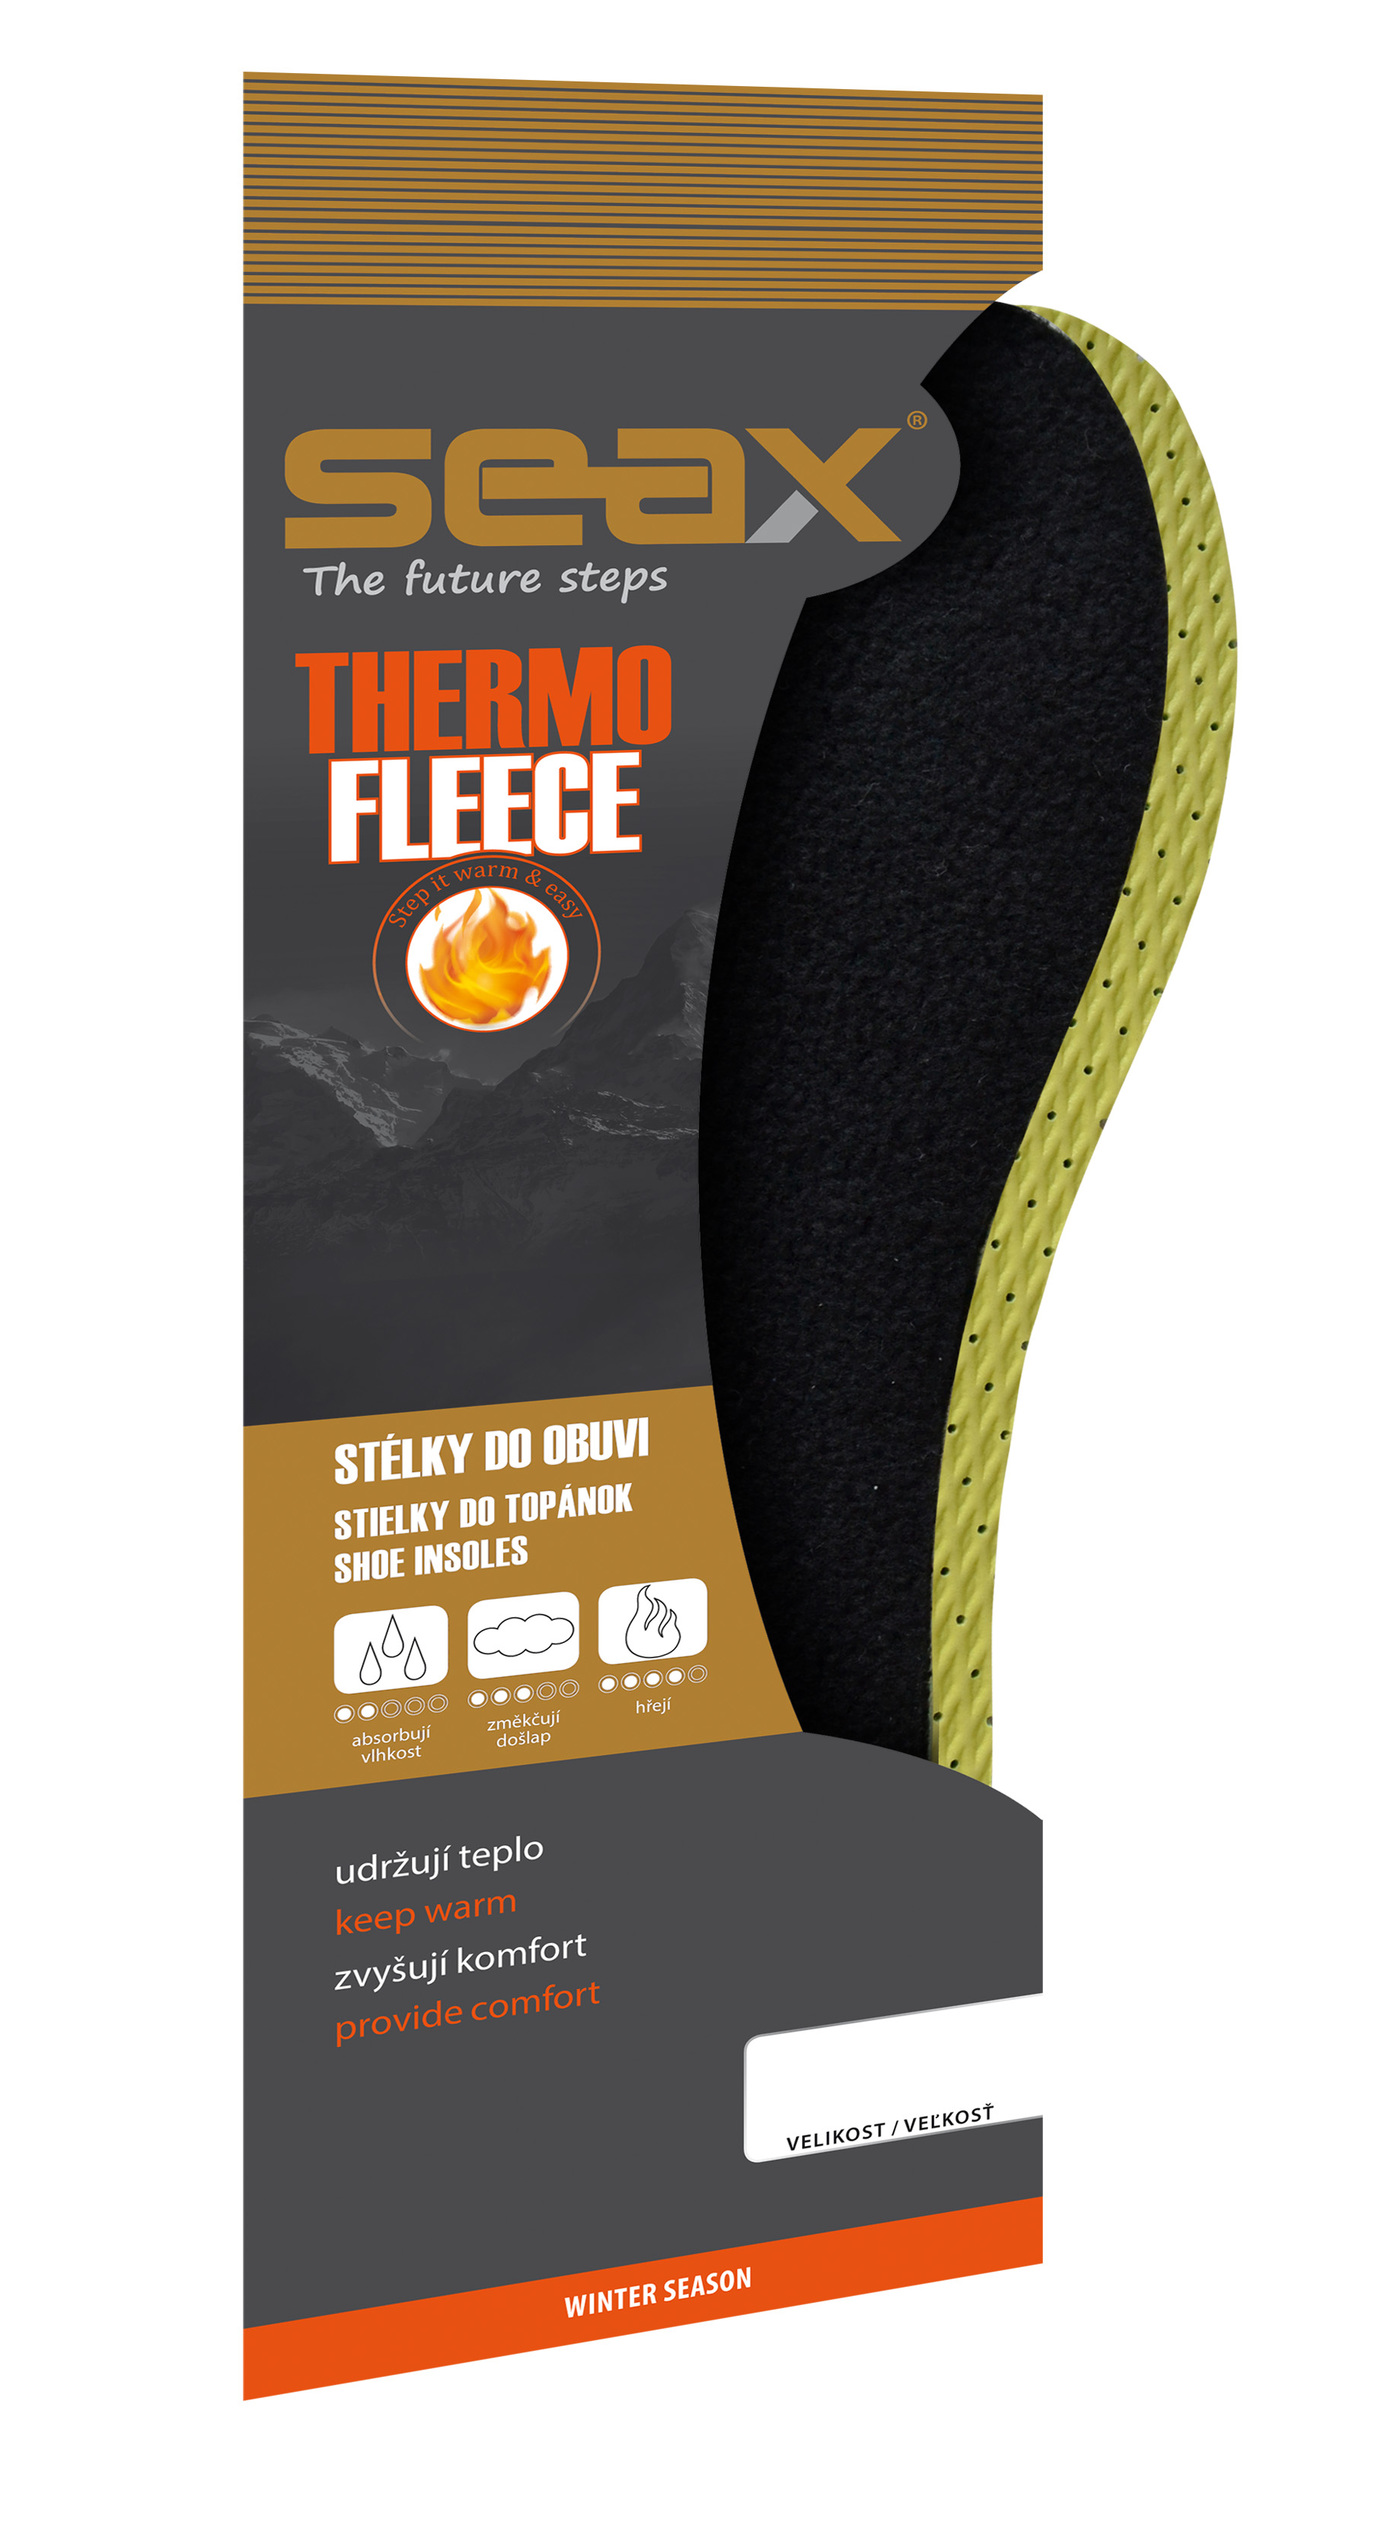 SEAX Thermo Fleece